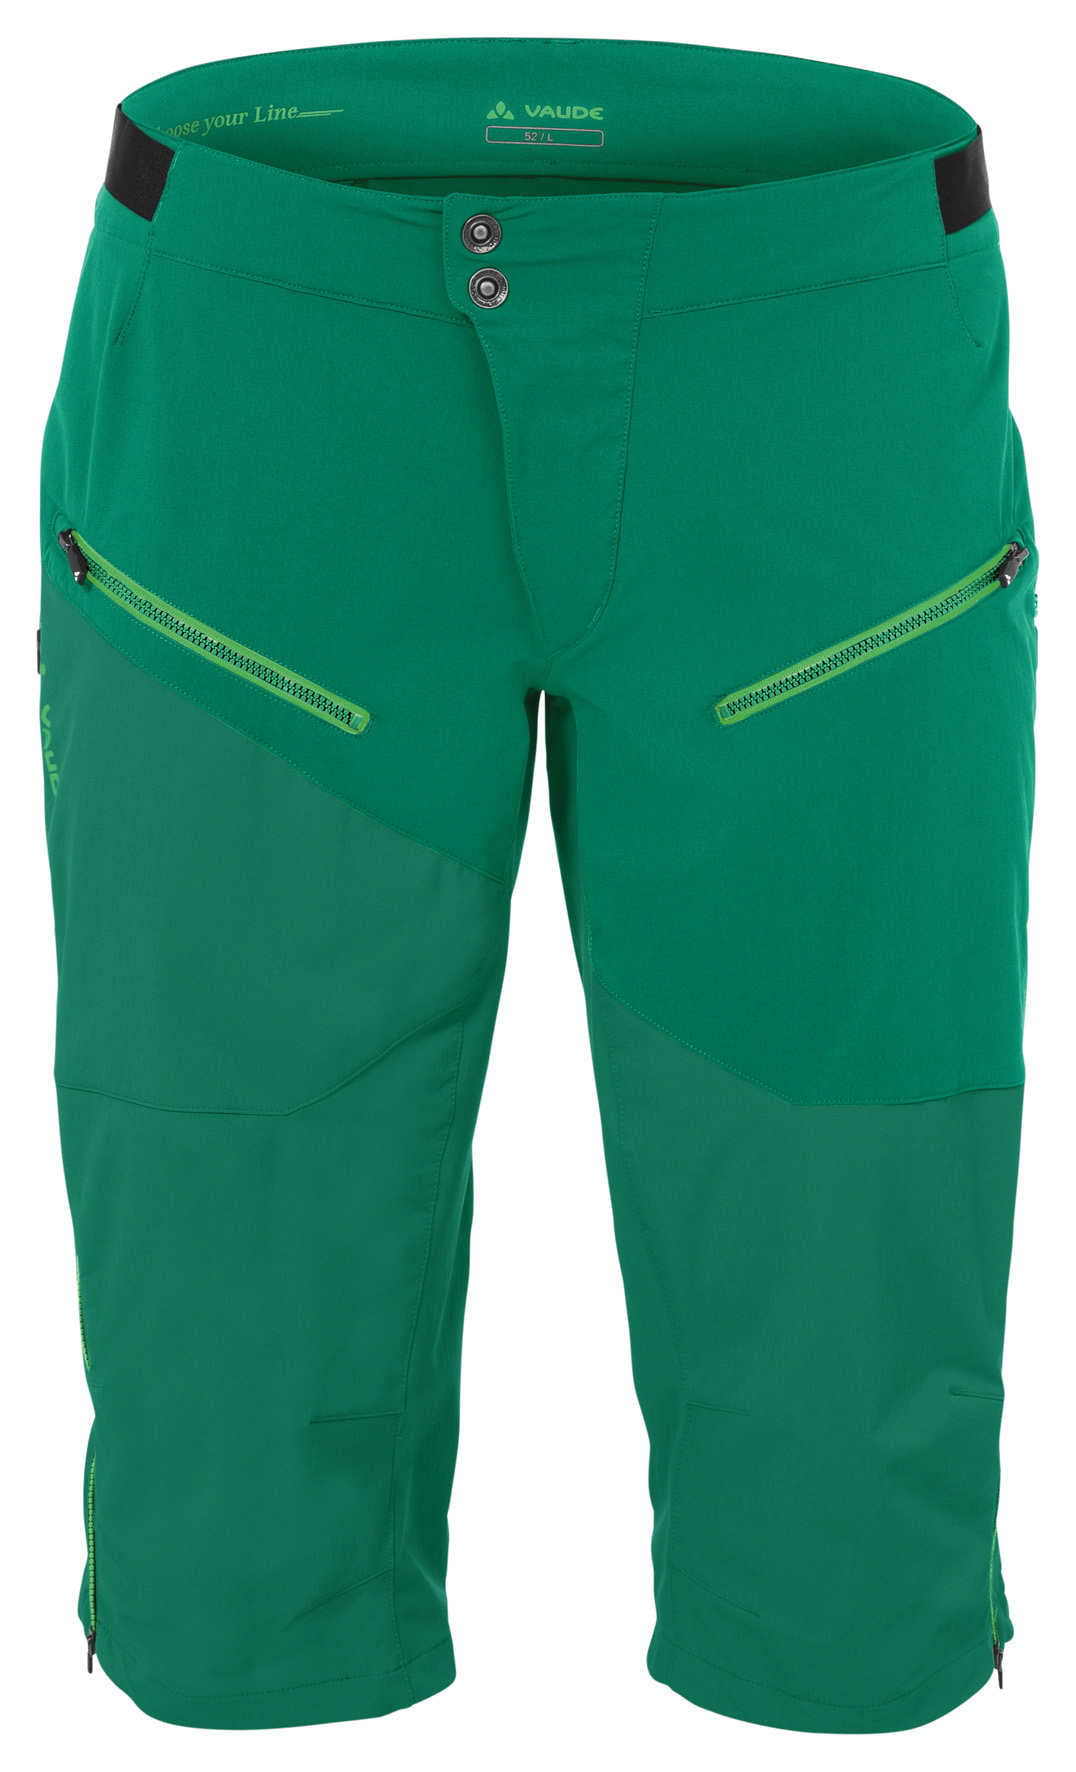 Men´s Garbanzo Shorts yucca green Größe S - schneider-sports